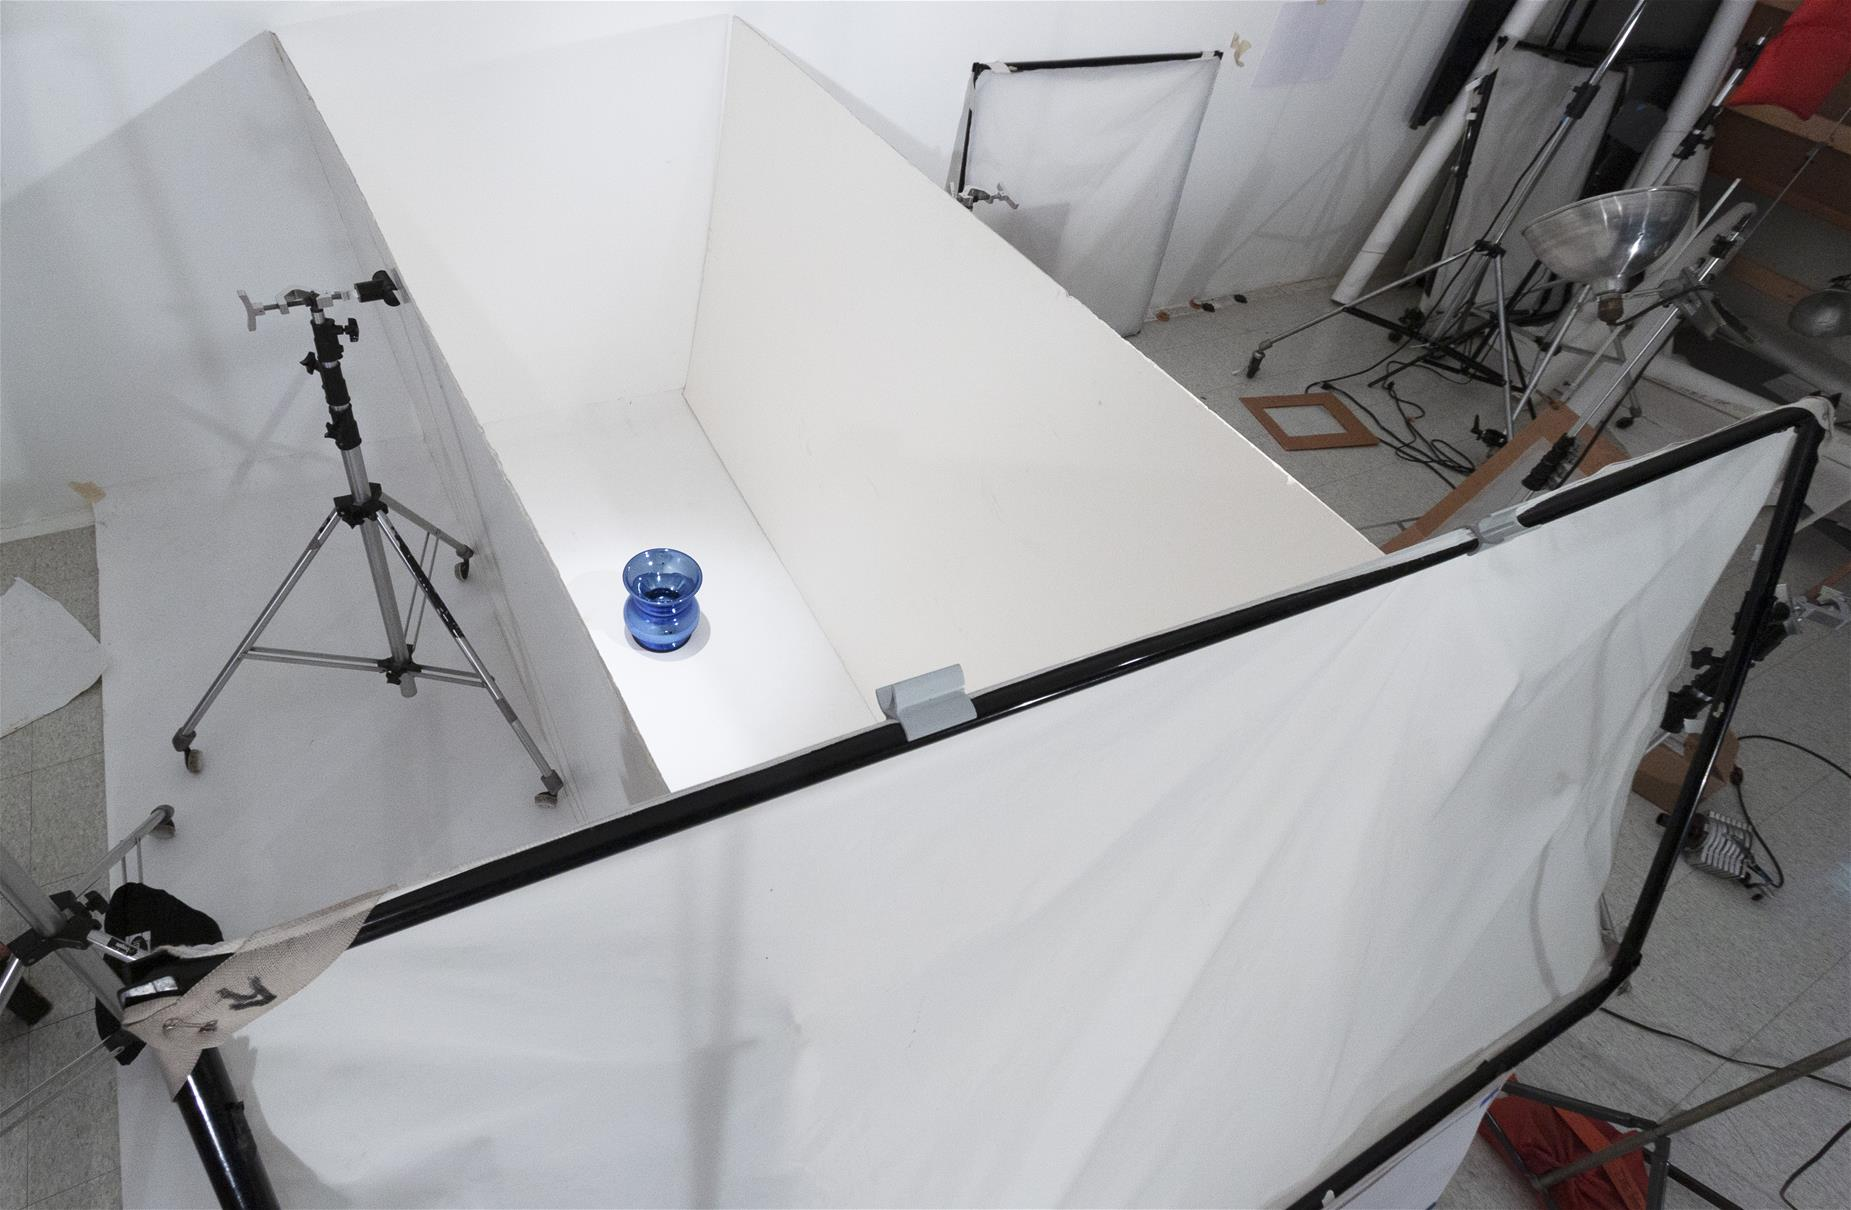 Aerial shot of space blocked off with white boards and paper; blue spittoon inside space; photography equipment outside